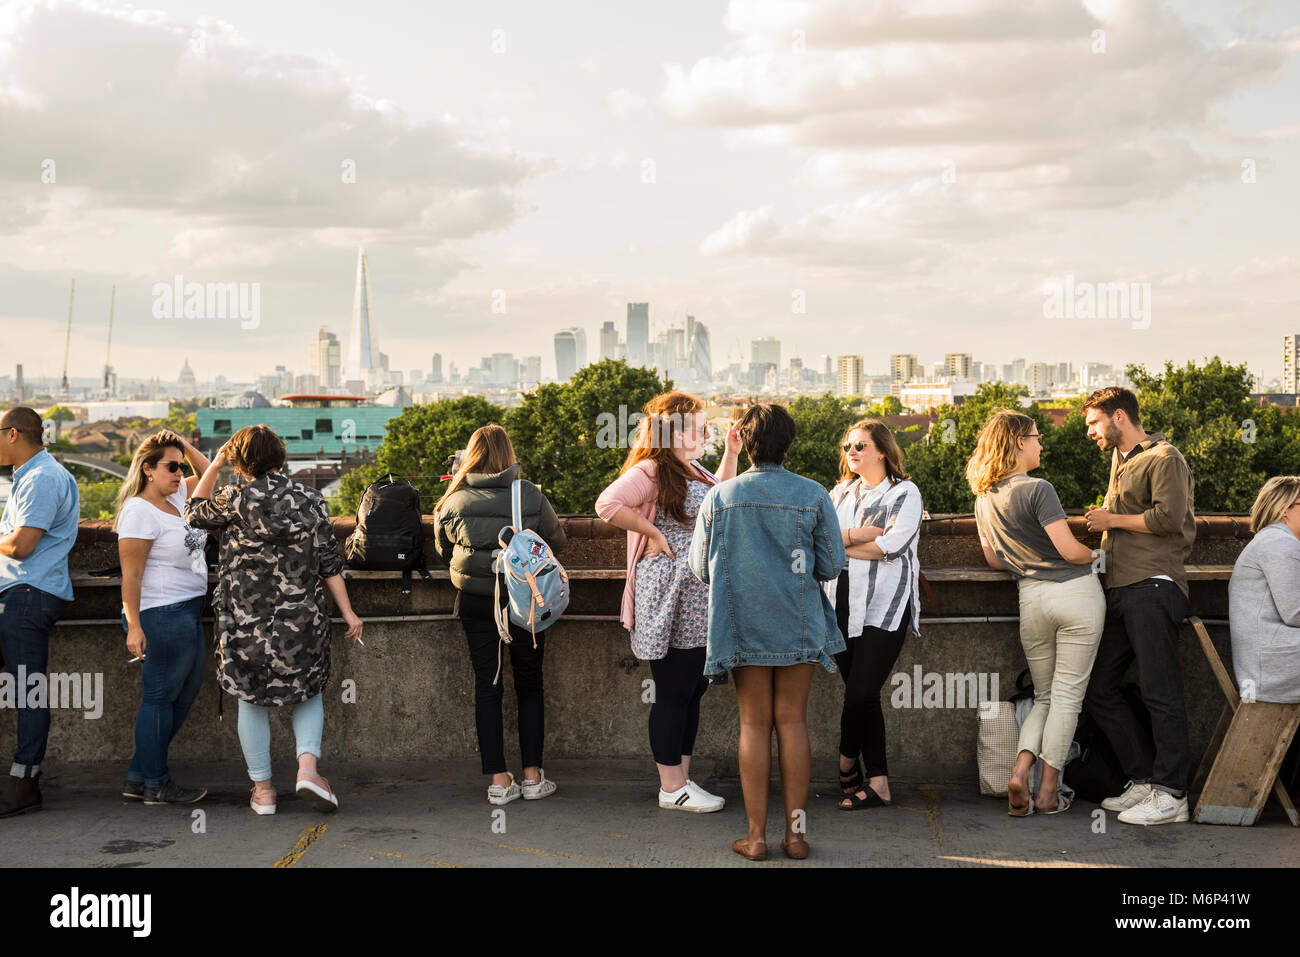 People socialising and enjoying a drink together at Franks Cafe outdoor rooftop bar with view of the city. - Stock Image